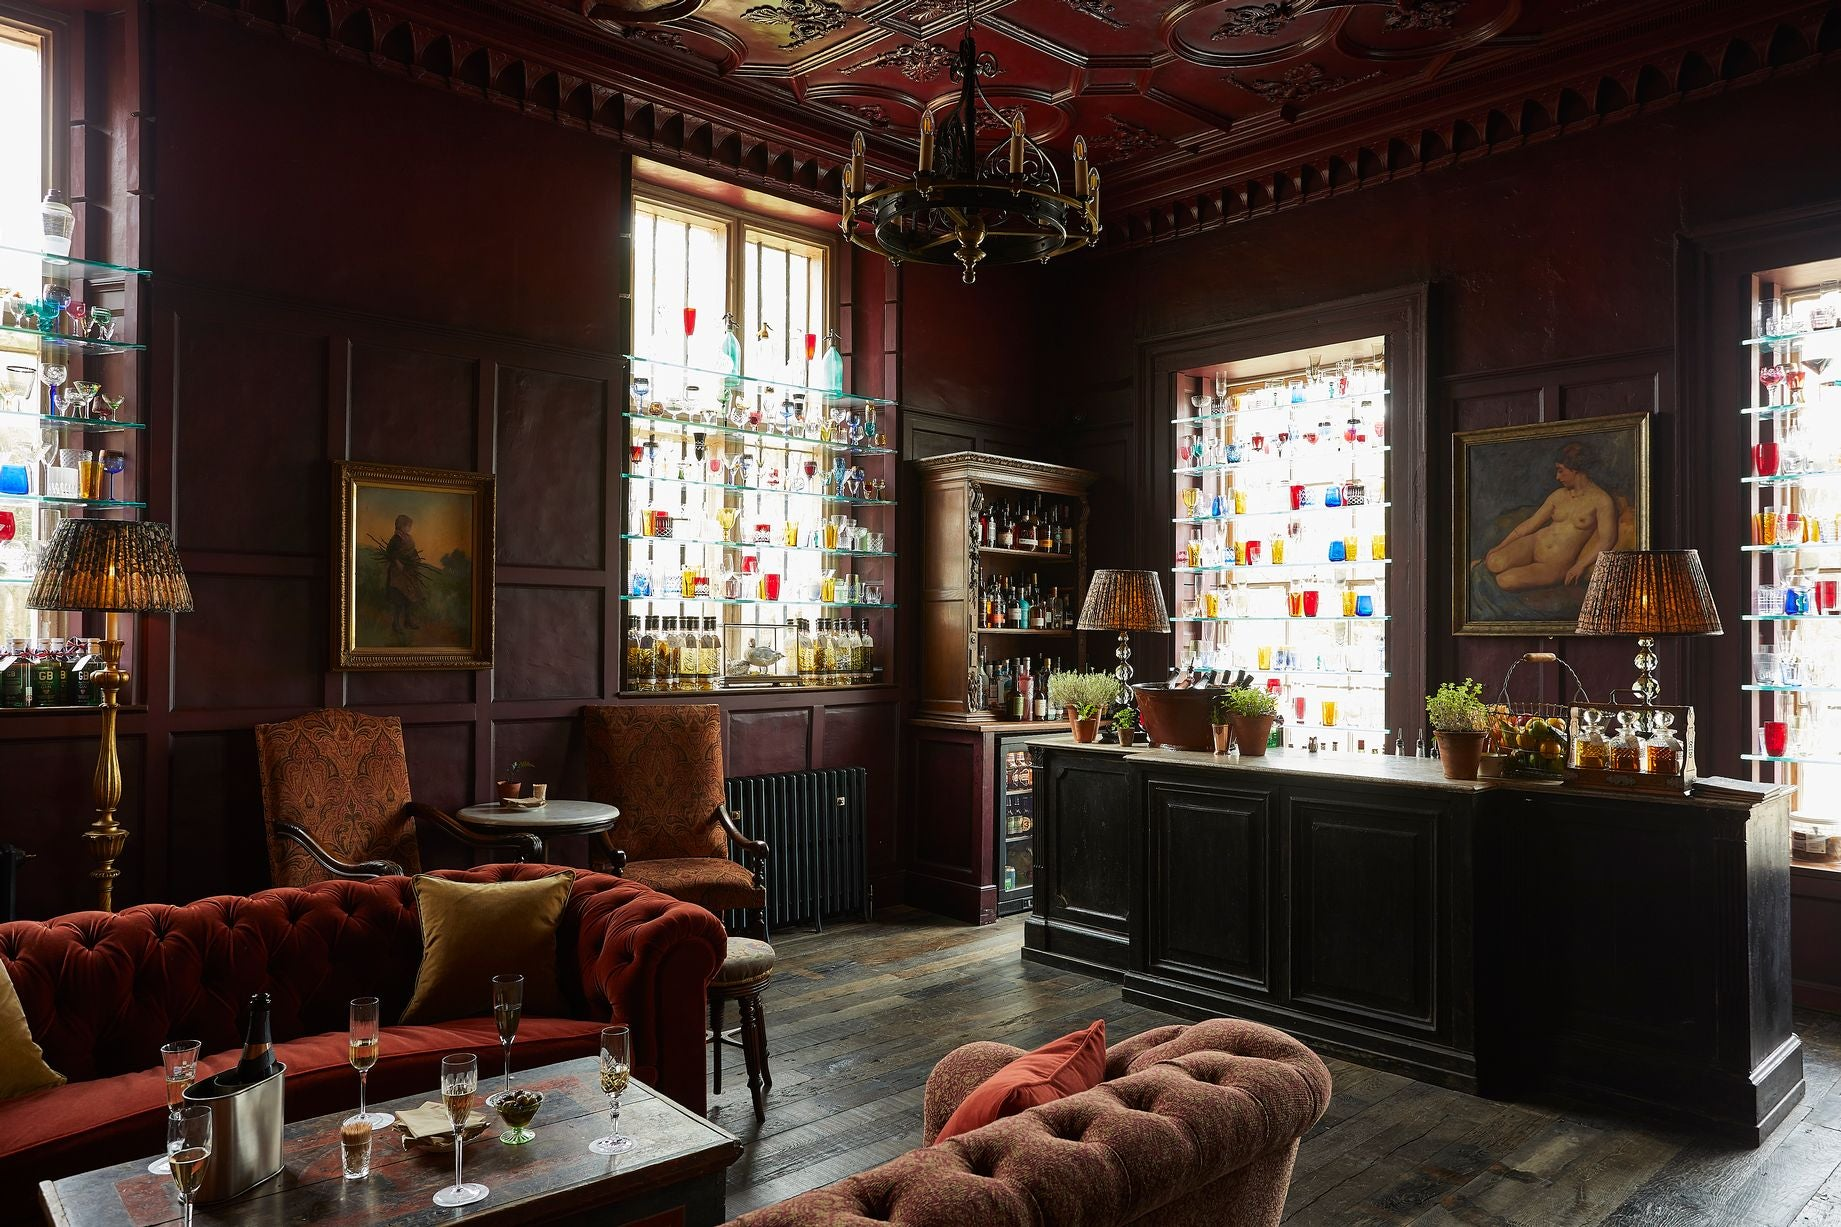 The inside of The Pig hotel bar with dark wooden interior, a chandelier and chesterfield sofas.